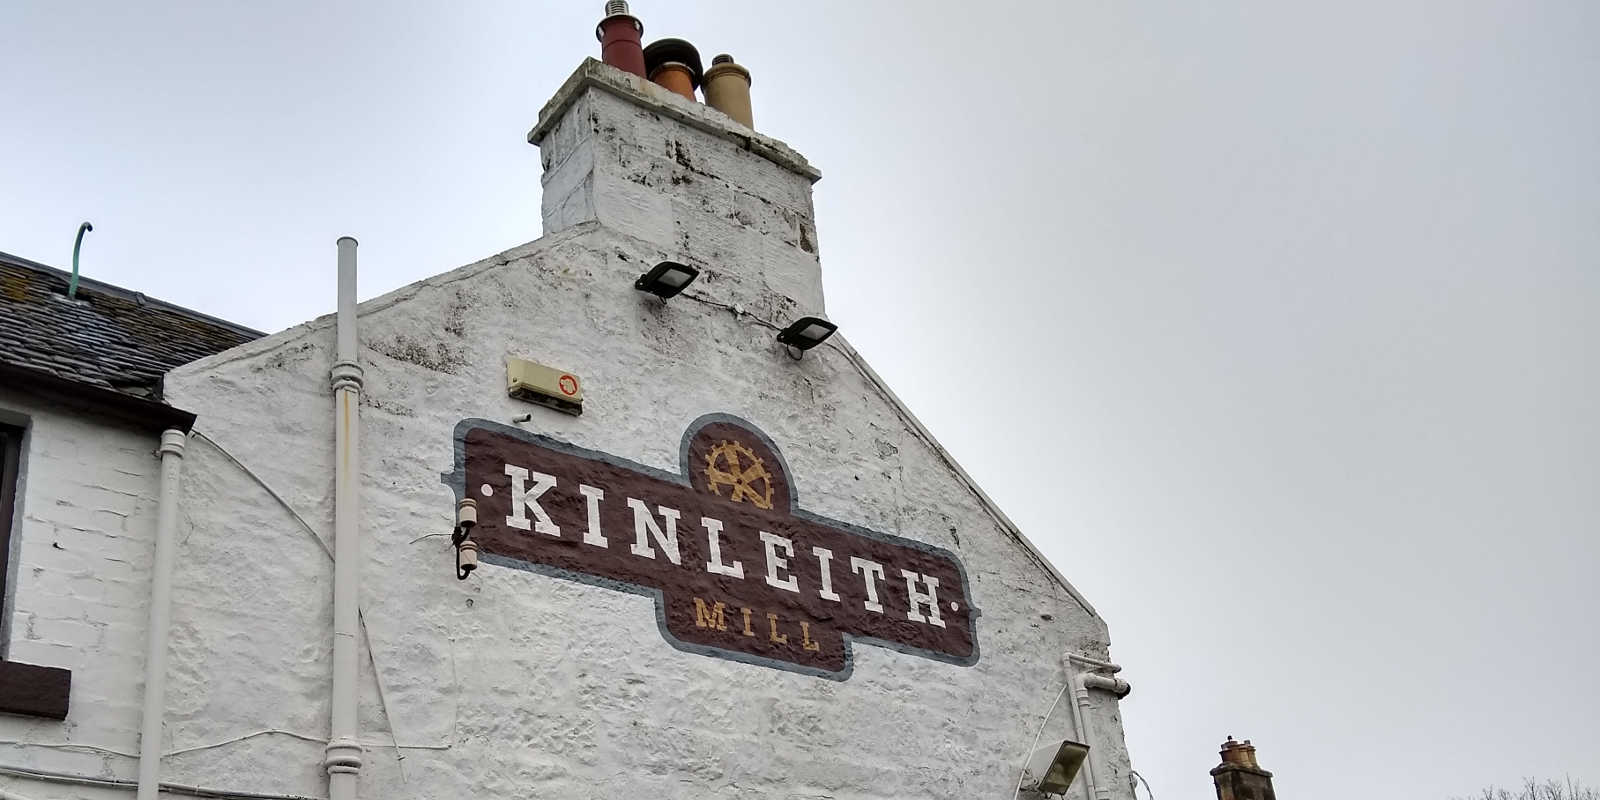 Kinleith Mill sign on outside wall of pub